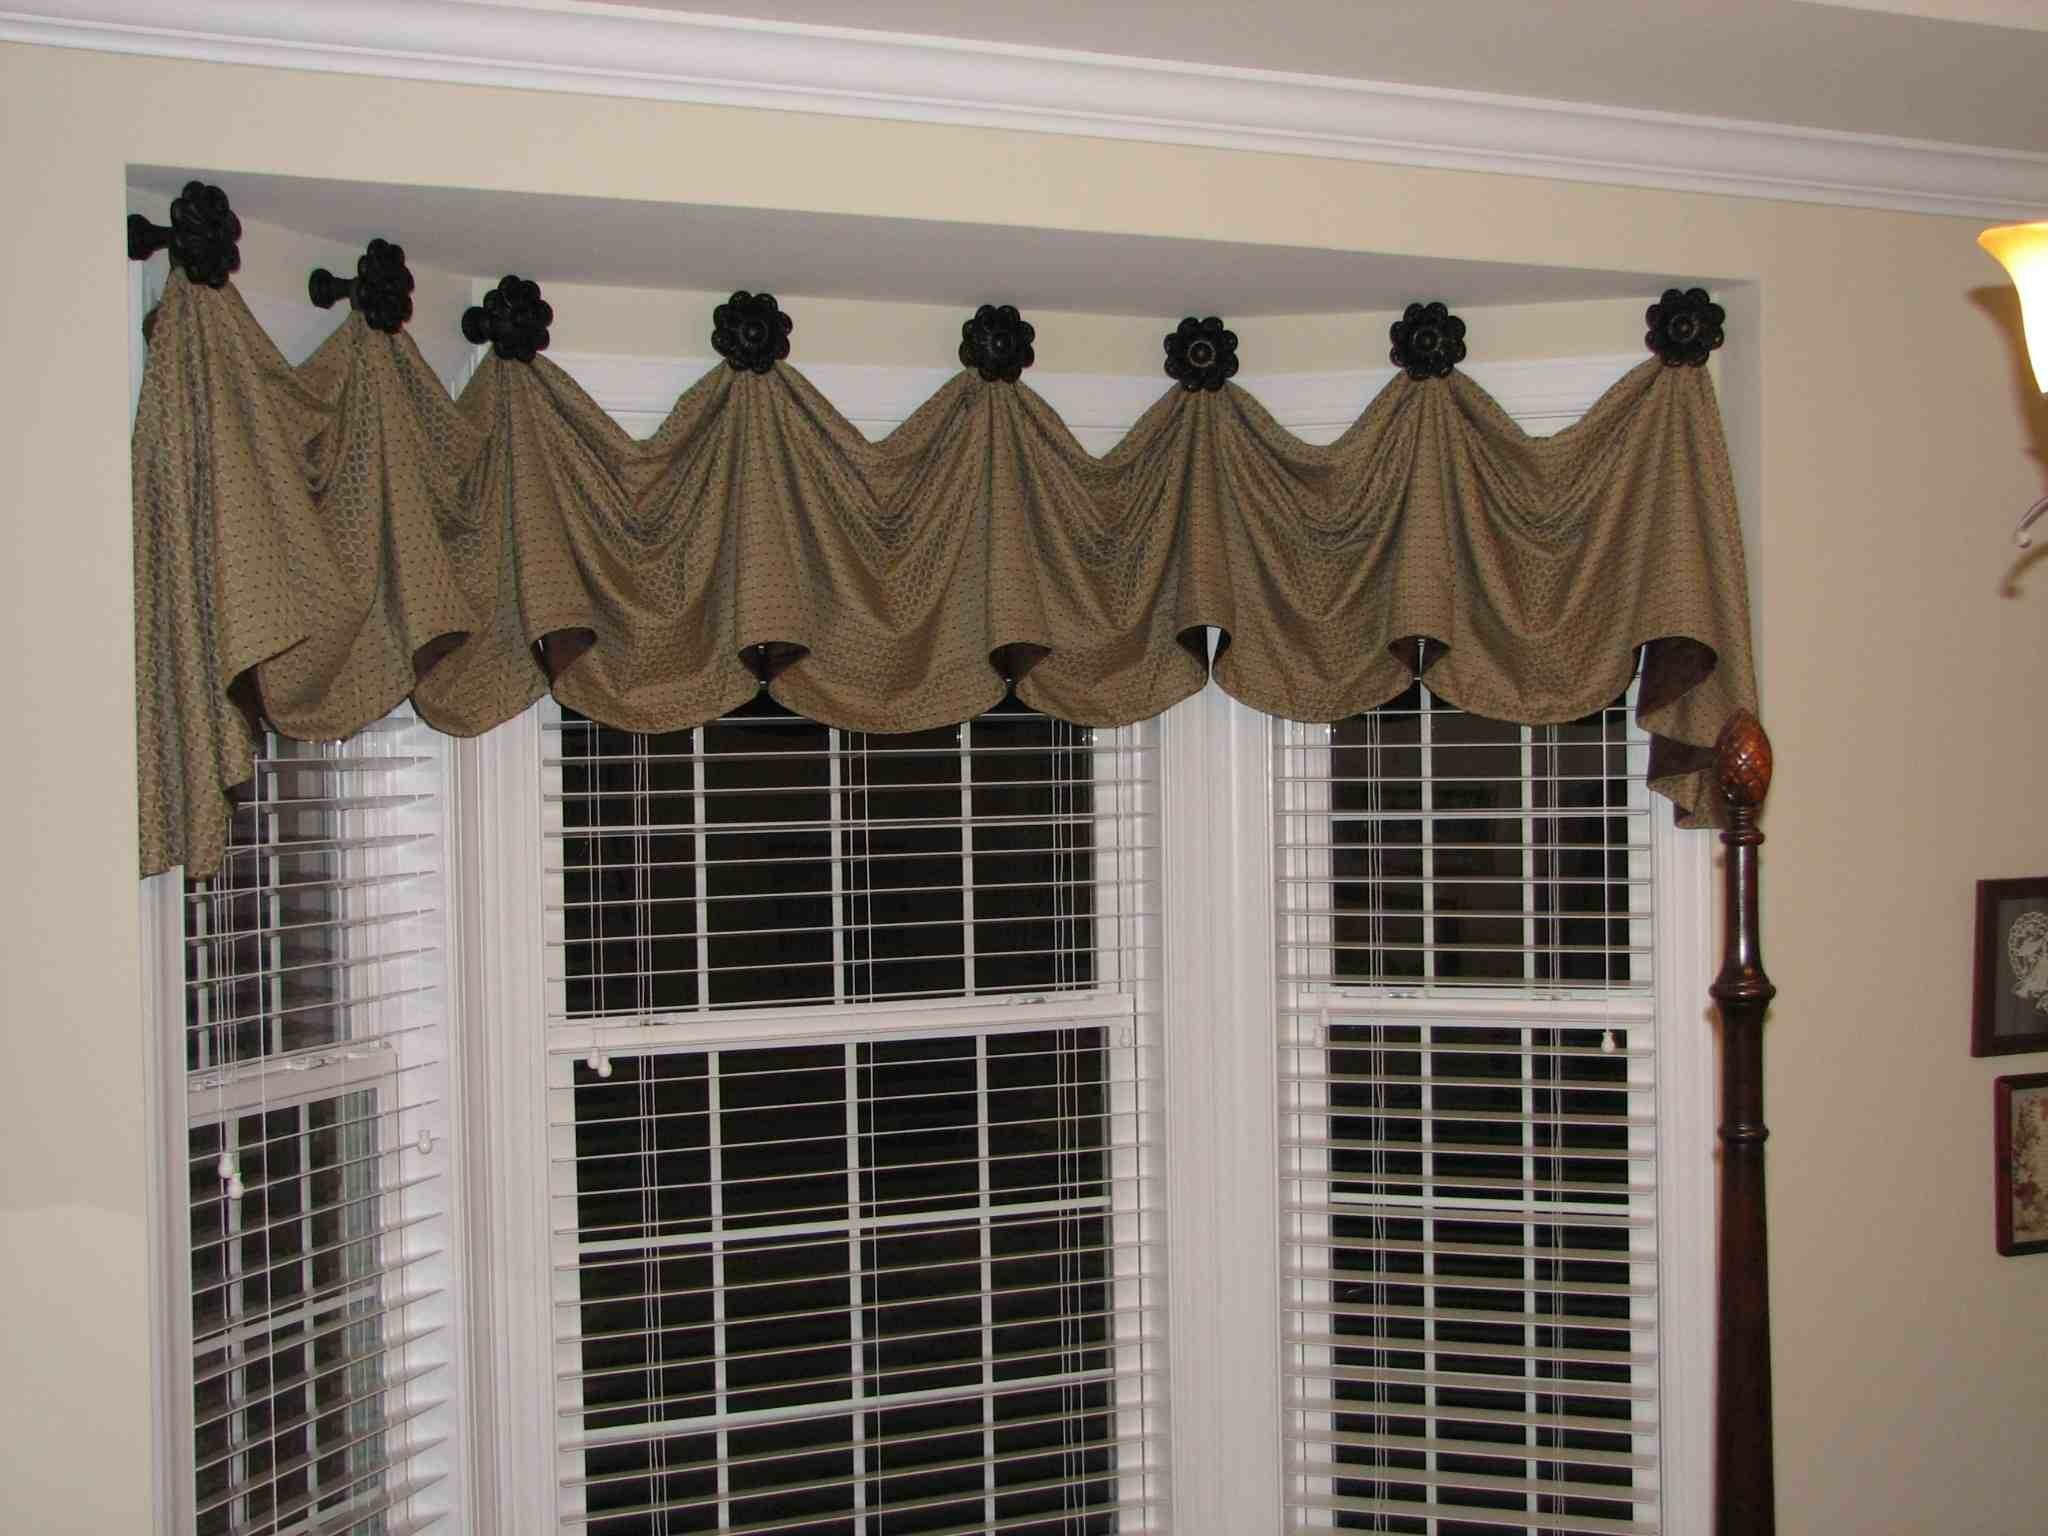 Living Room Valances | Window Valance Treatments | Valances Living Room Part 36